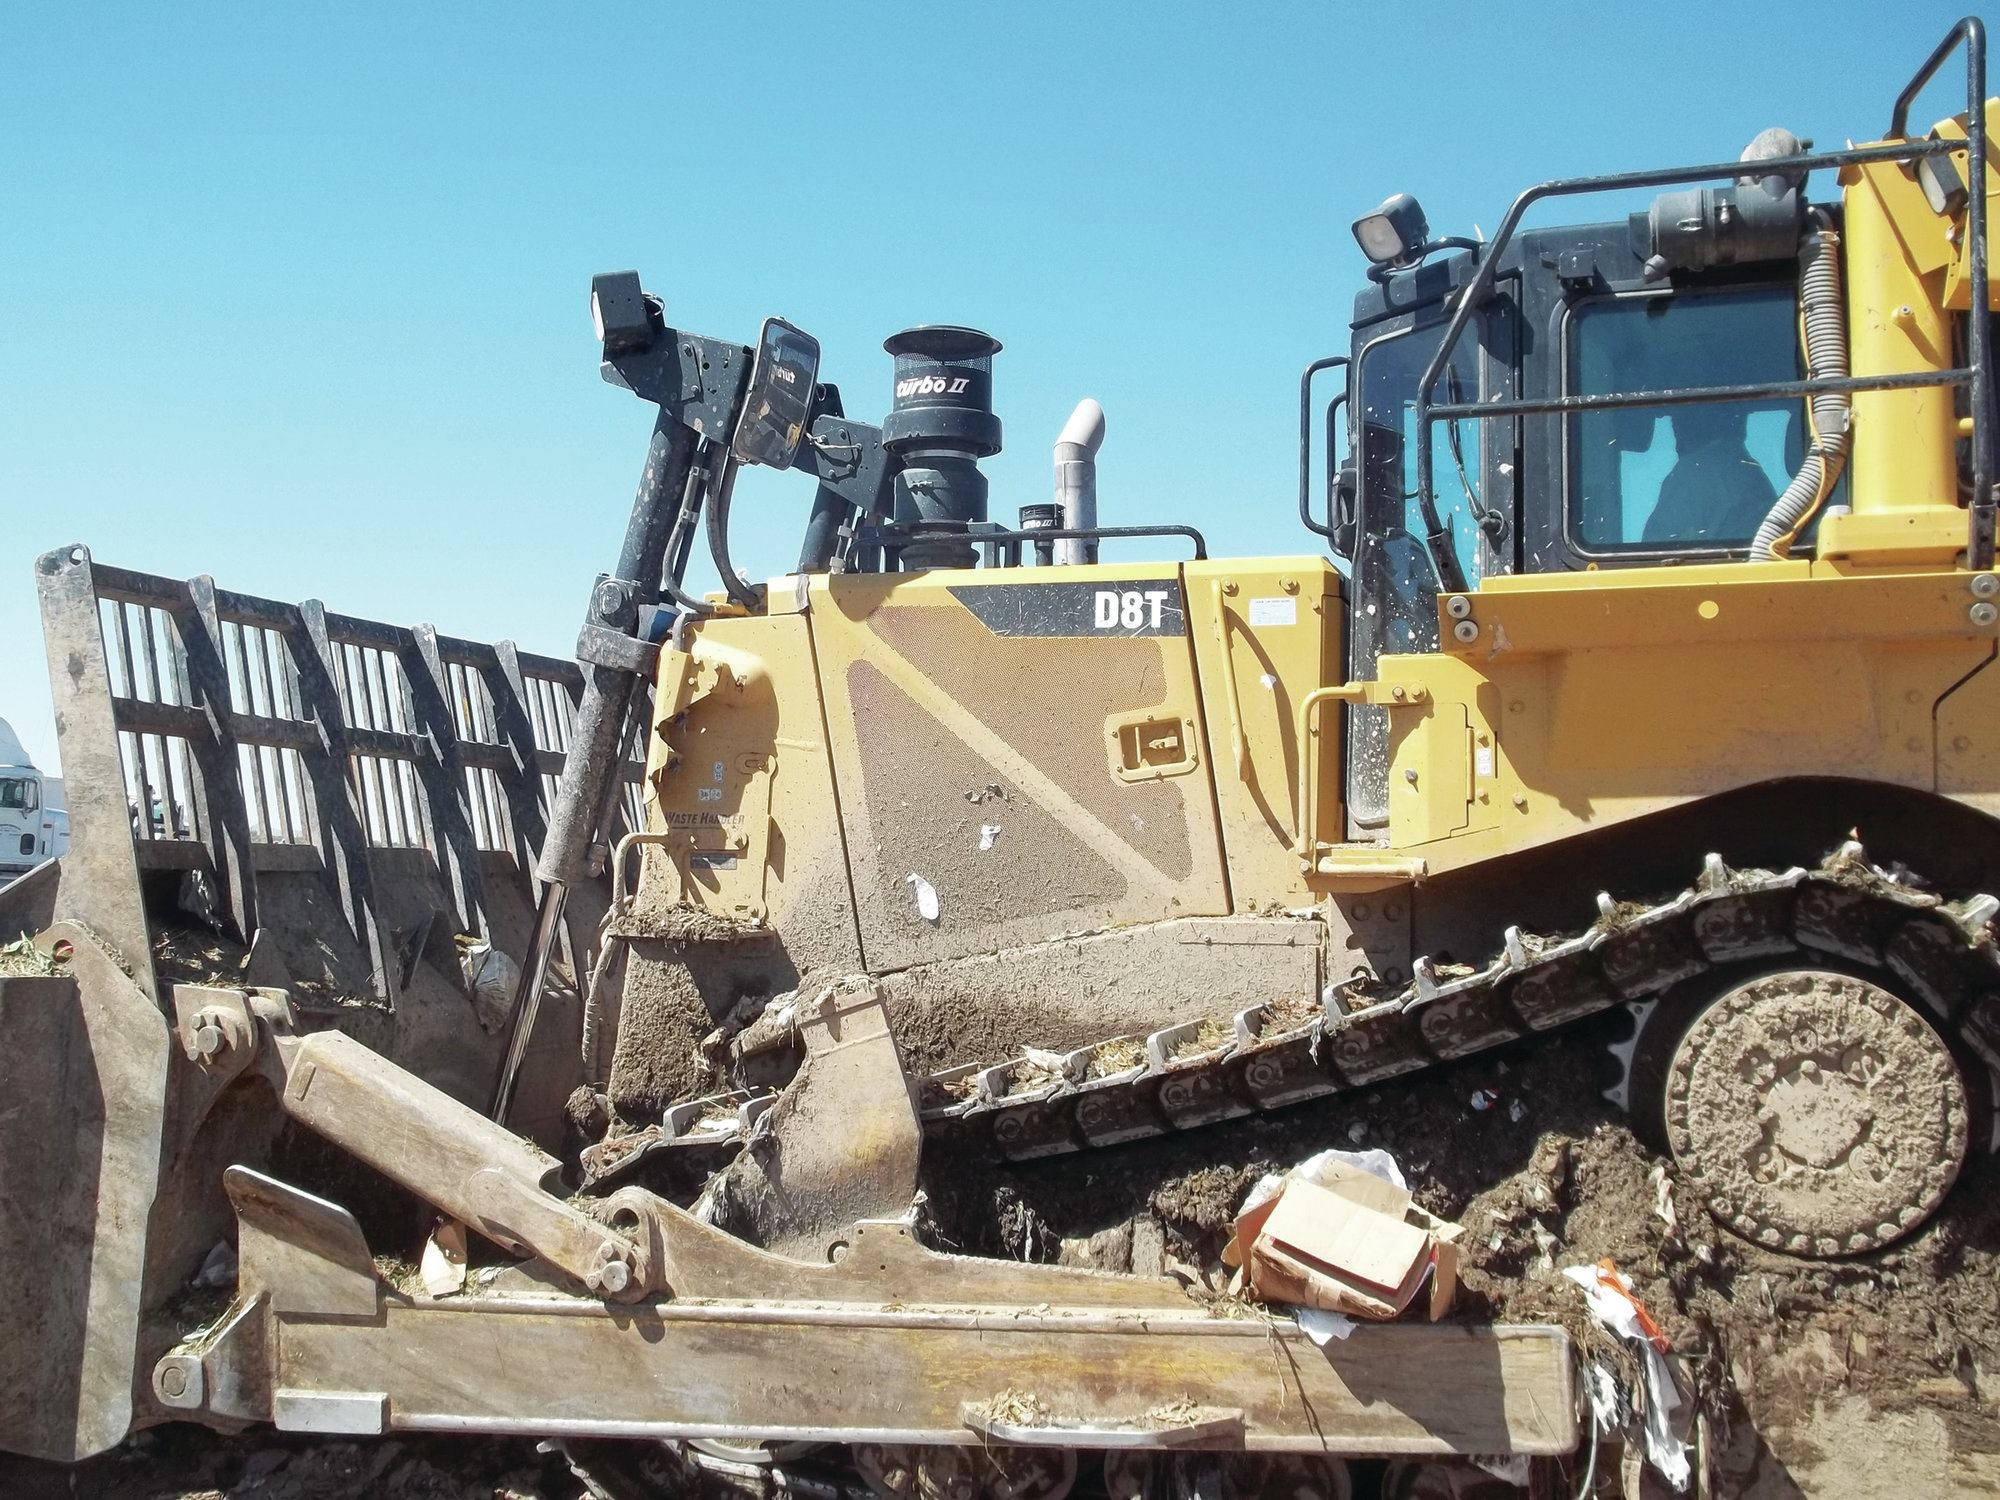 Tractors Air Filter Real Life : Precleaners extend landfill equipment engine life public